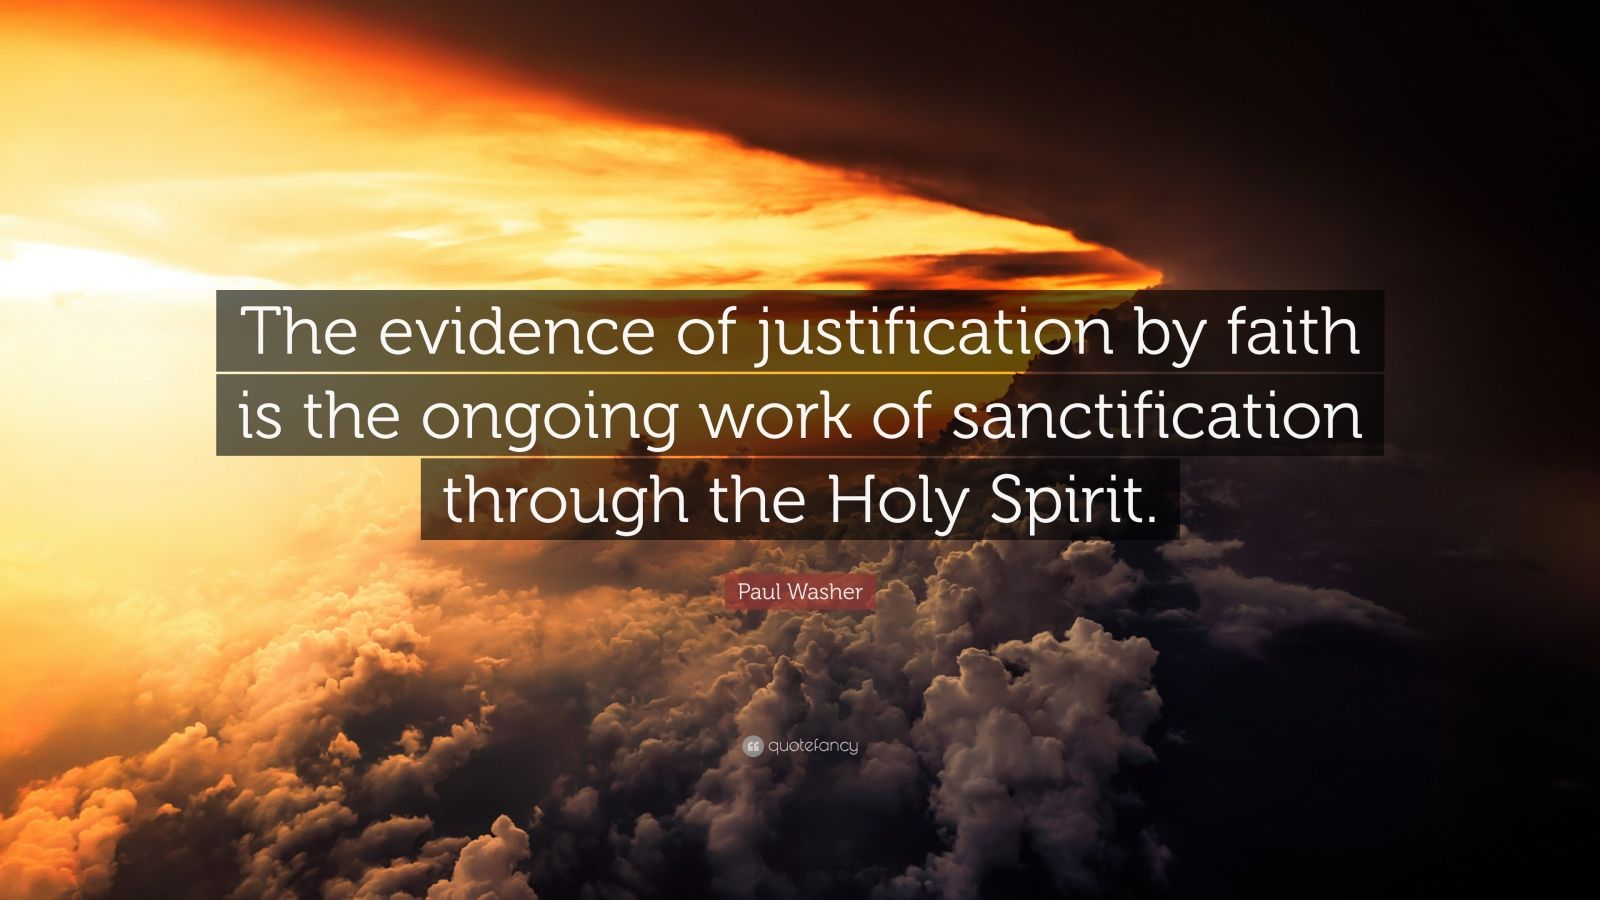 Beautiful Wallpapers With Inspirational Quotes Paul Washer Quote The Evidence Of Justification By Faith